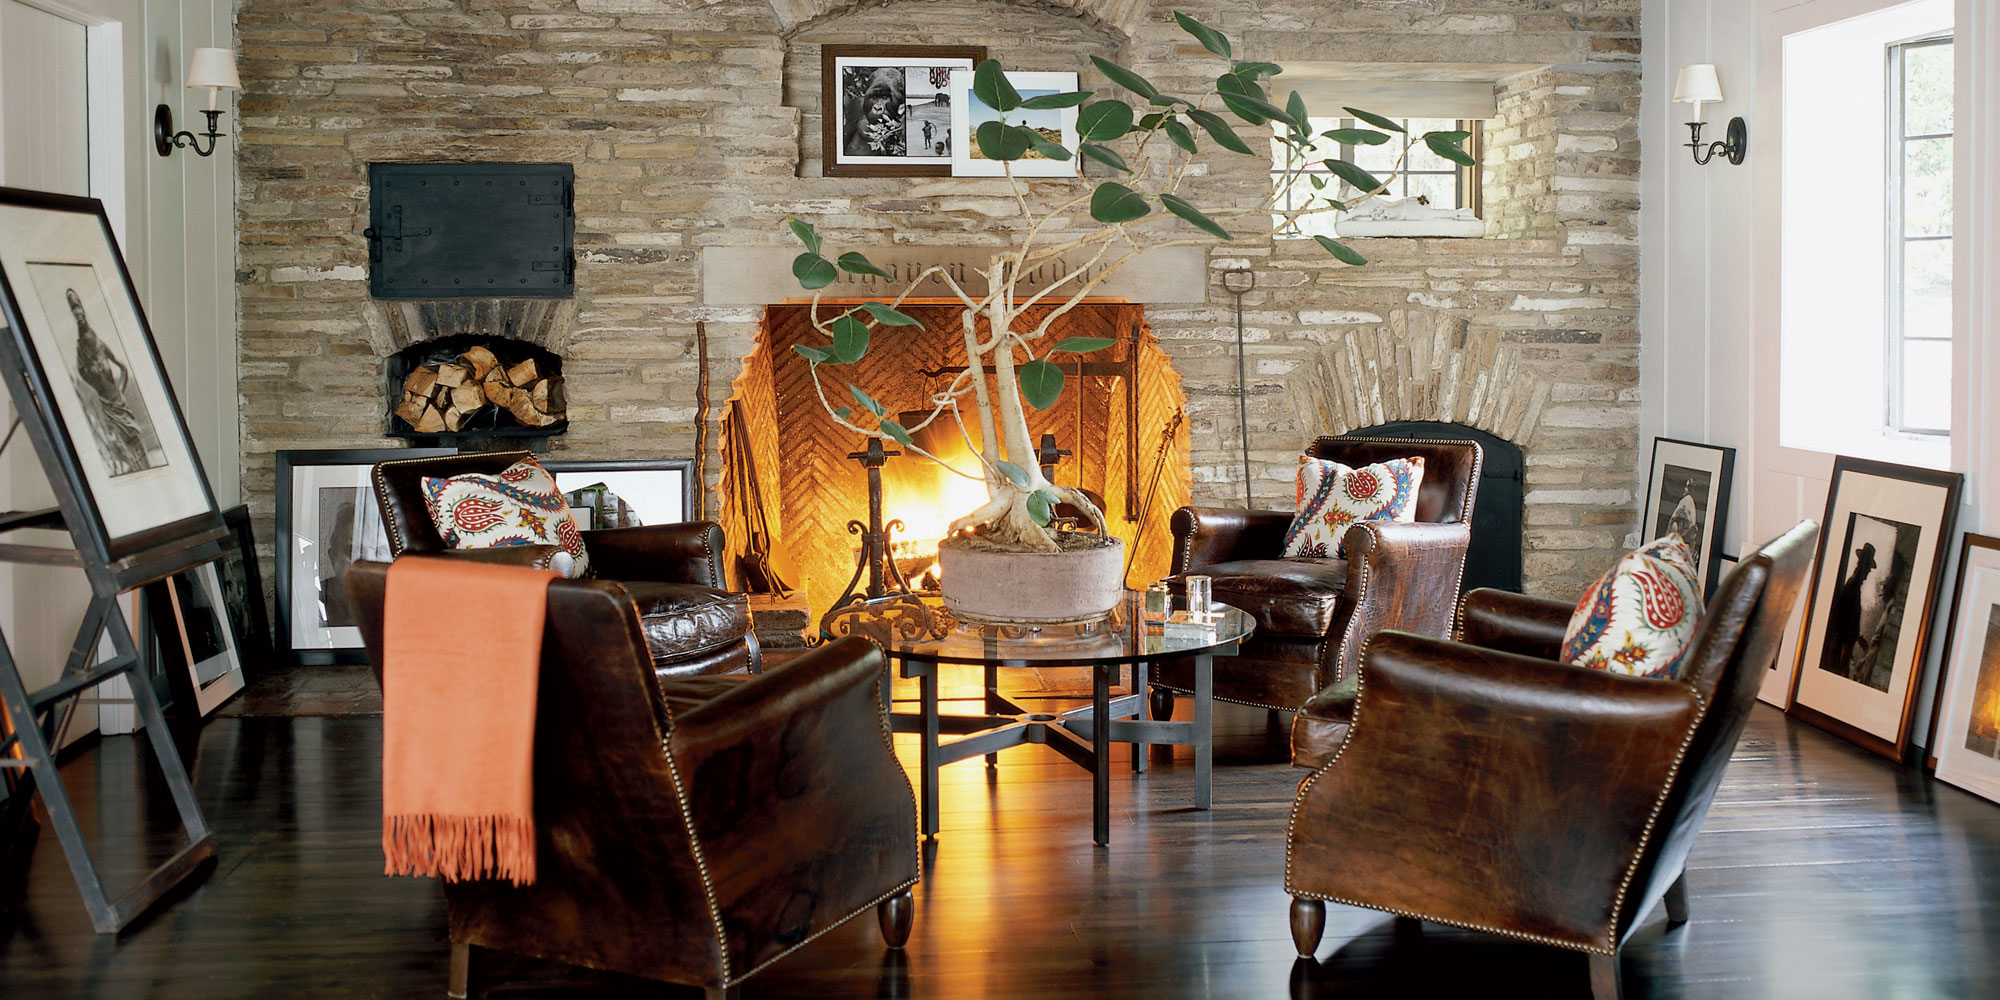 30 Beautiful And Cozy Fall Dining Room Décor Ideas: 20 Fall Decorating Ideas